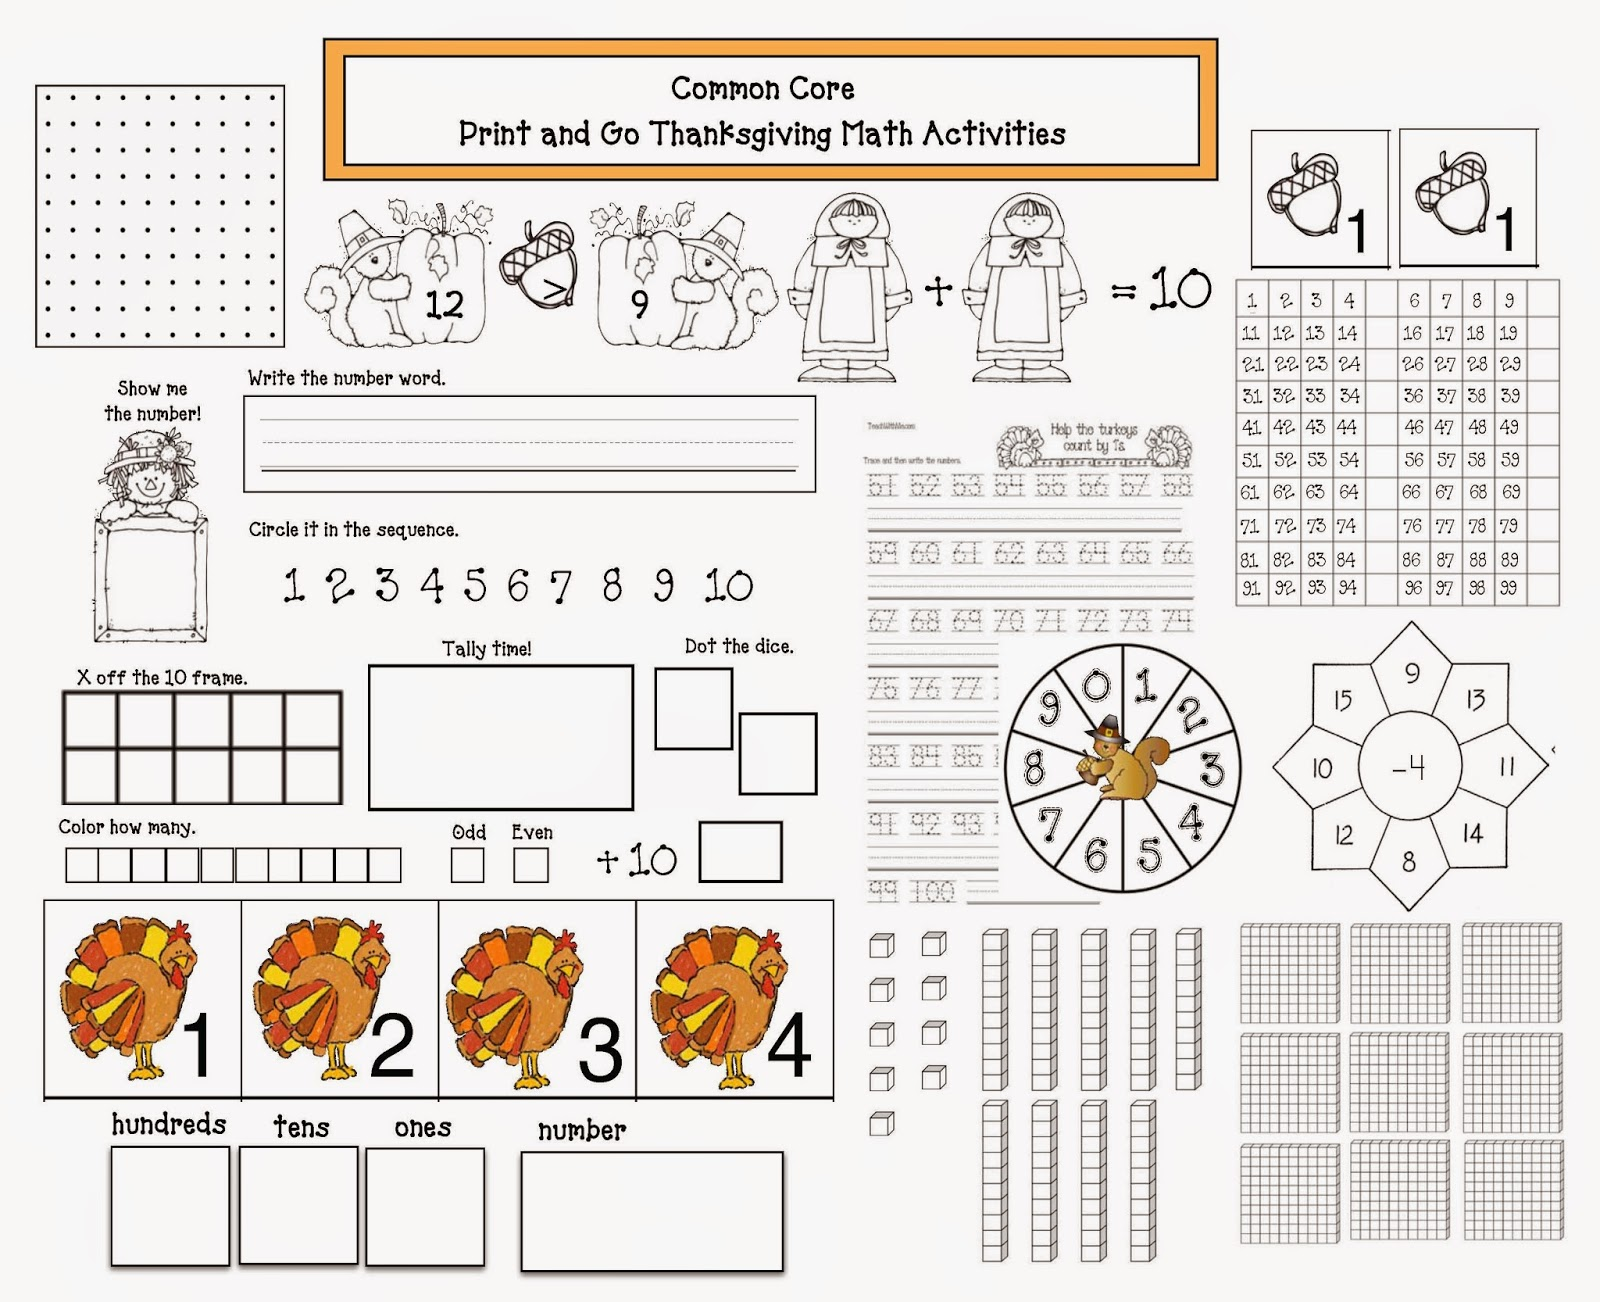 Classroom Freebies Common Core Thanksgiving Math Packet – 3rd Grade Common Core Math Worksheets